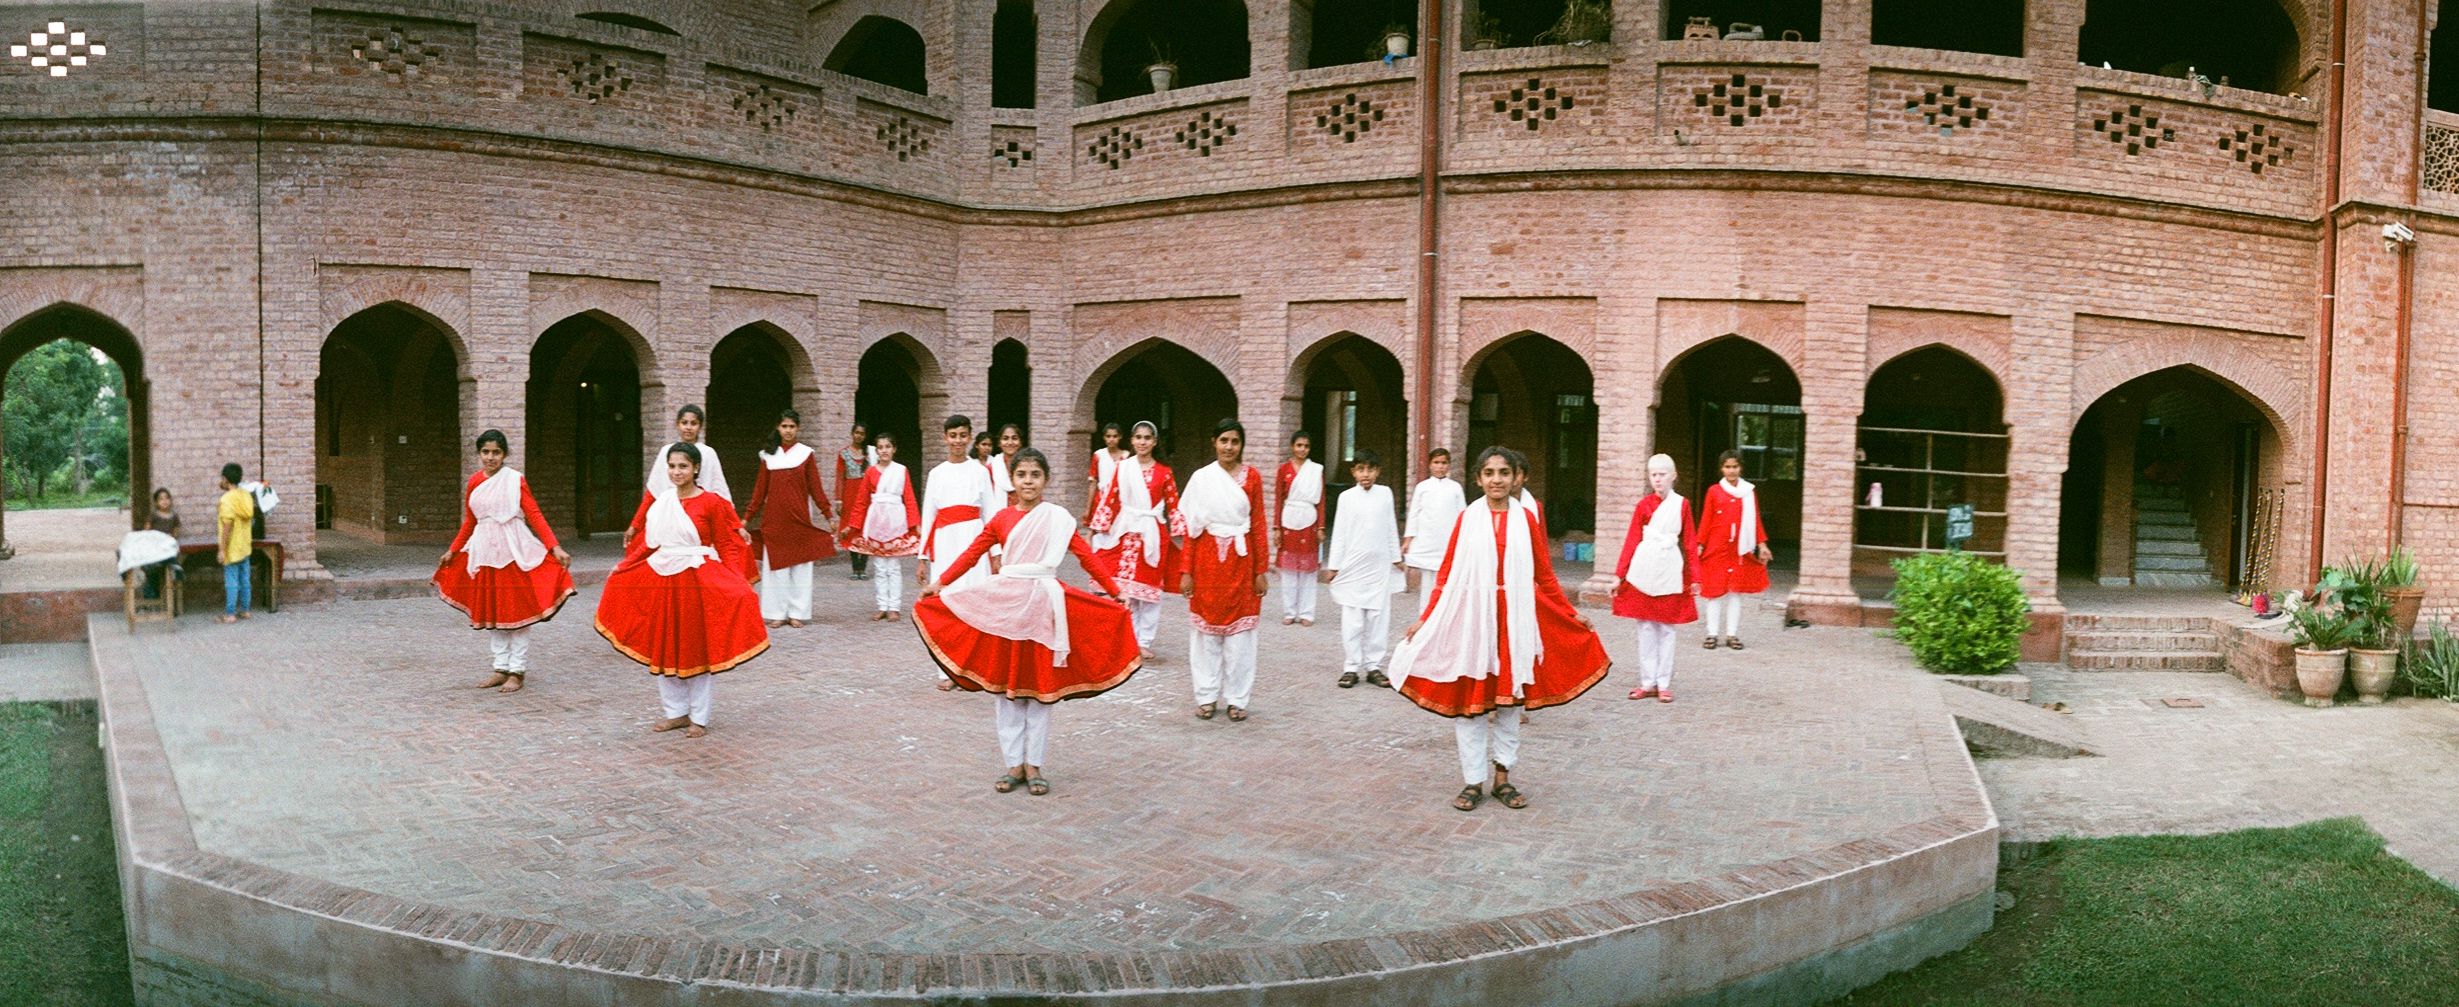 Kathak performance by students of Harsukh school Photo by AKSandhu